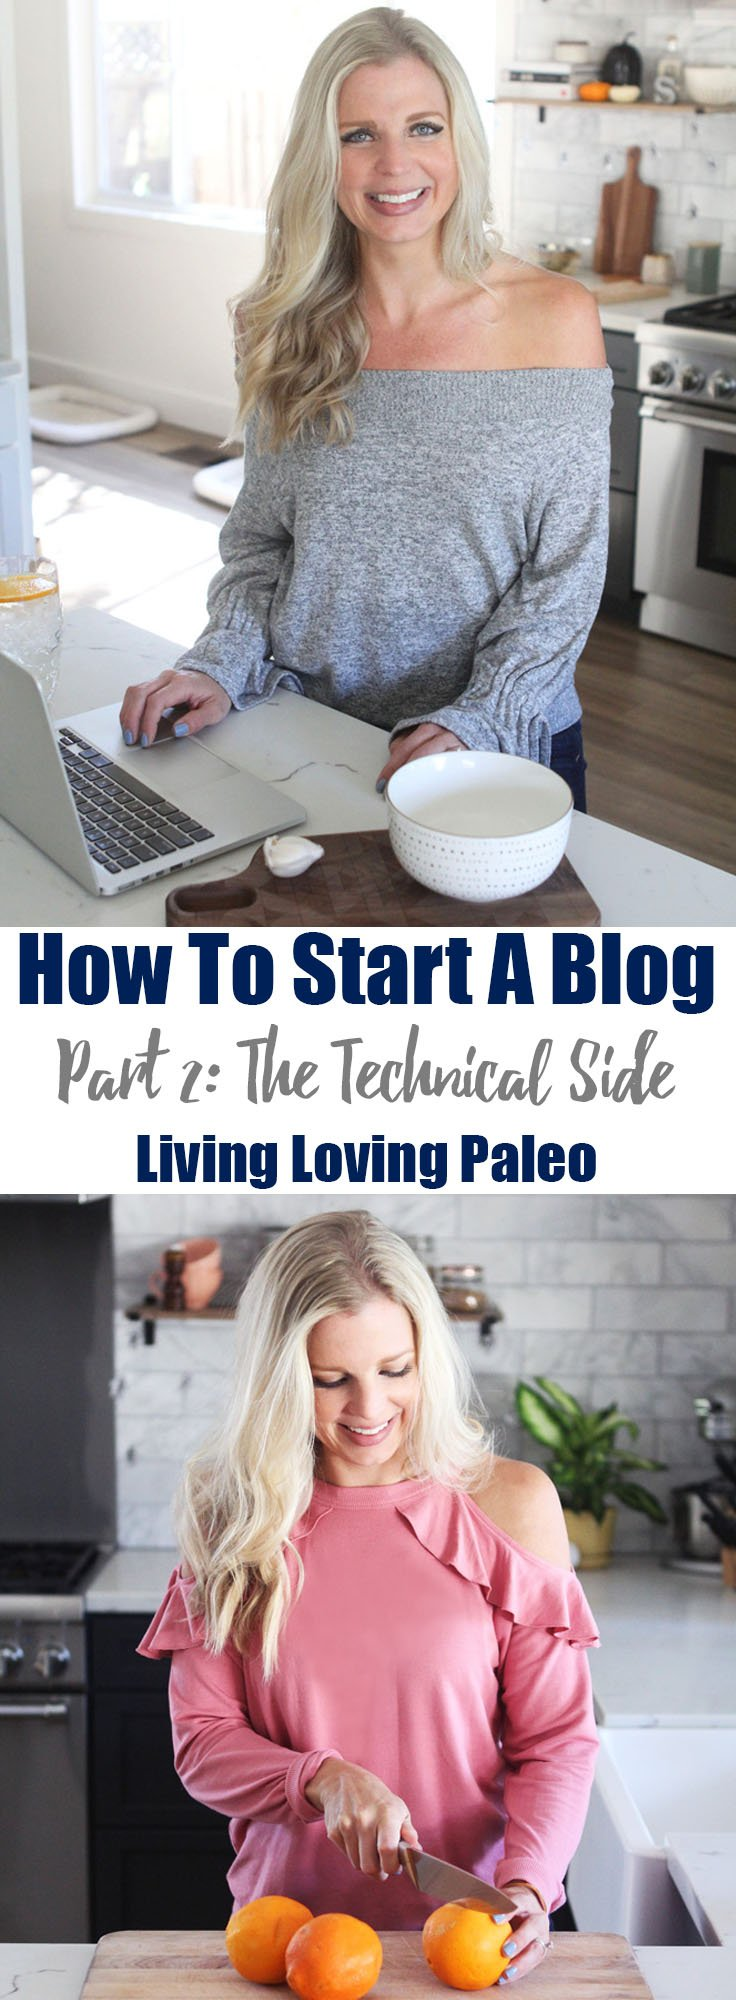 How To Start A Blog – Part 2: The Technical Side